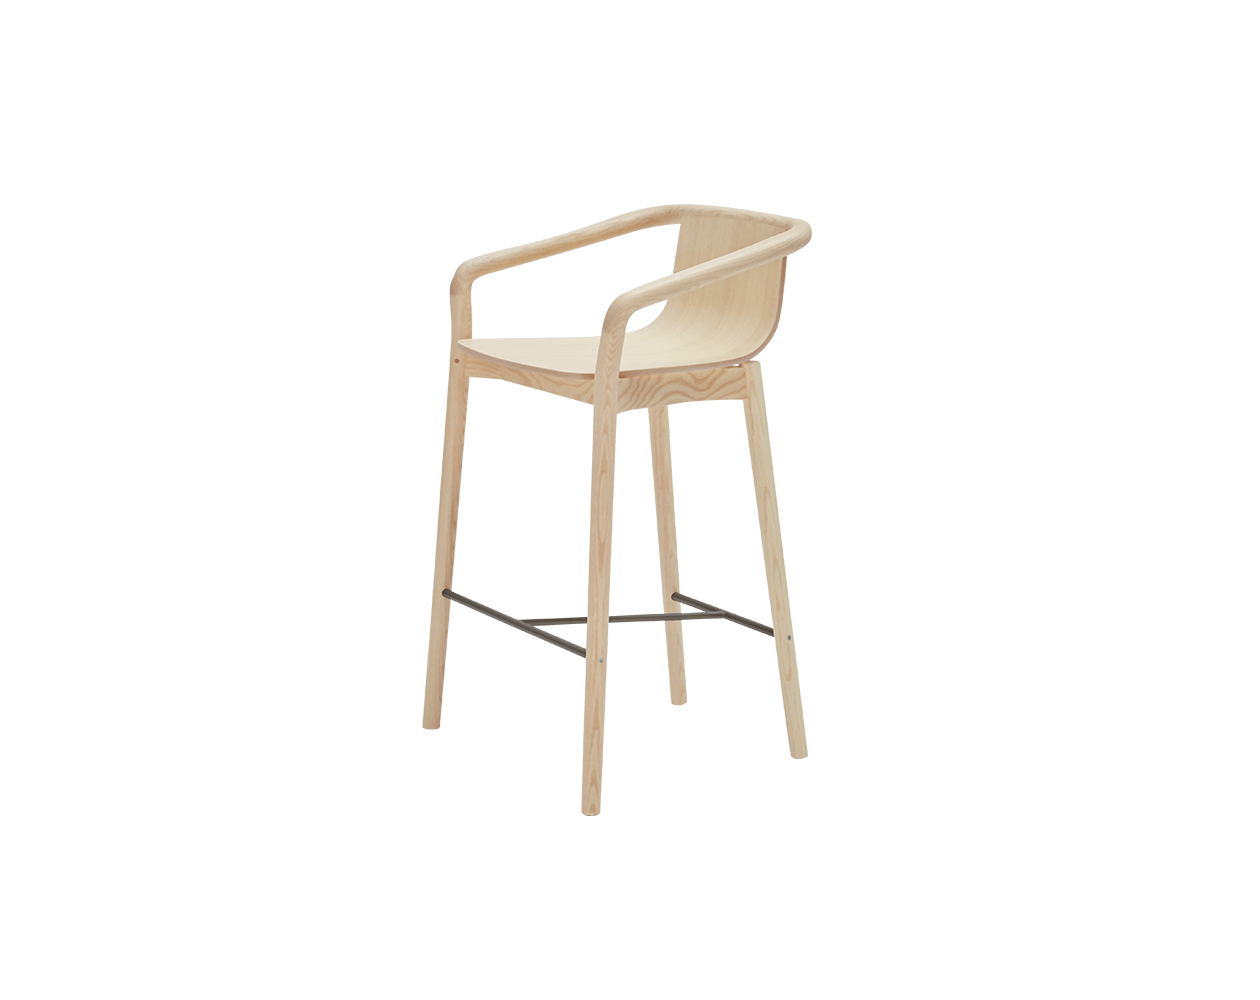 Pleasant Thomas Bar Stool By Metrica For Sp01 Sp01 Design Caraccident5 Cool Chair Designs And Ideas Caraccident5Info